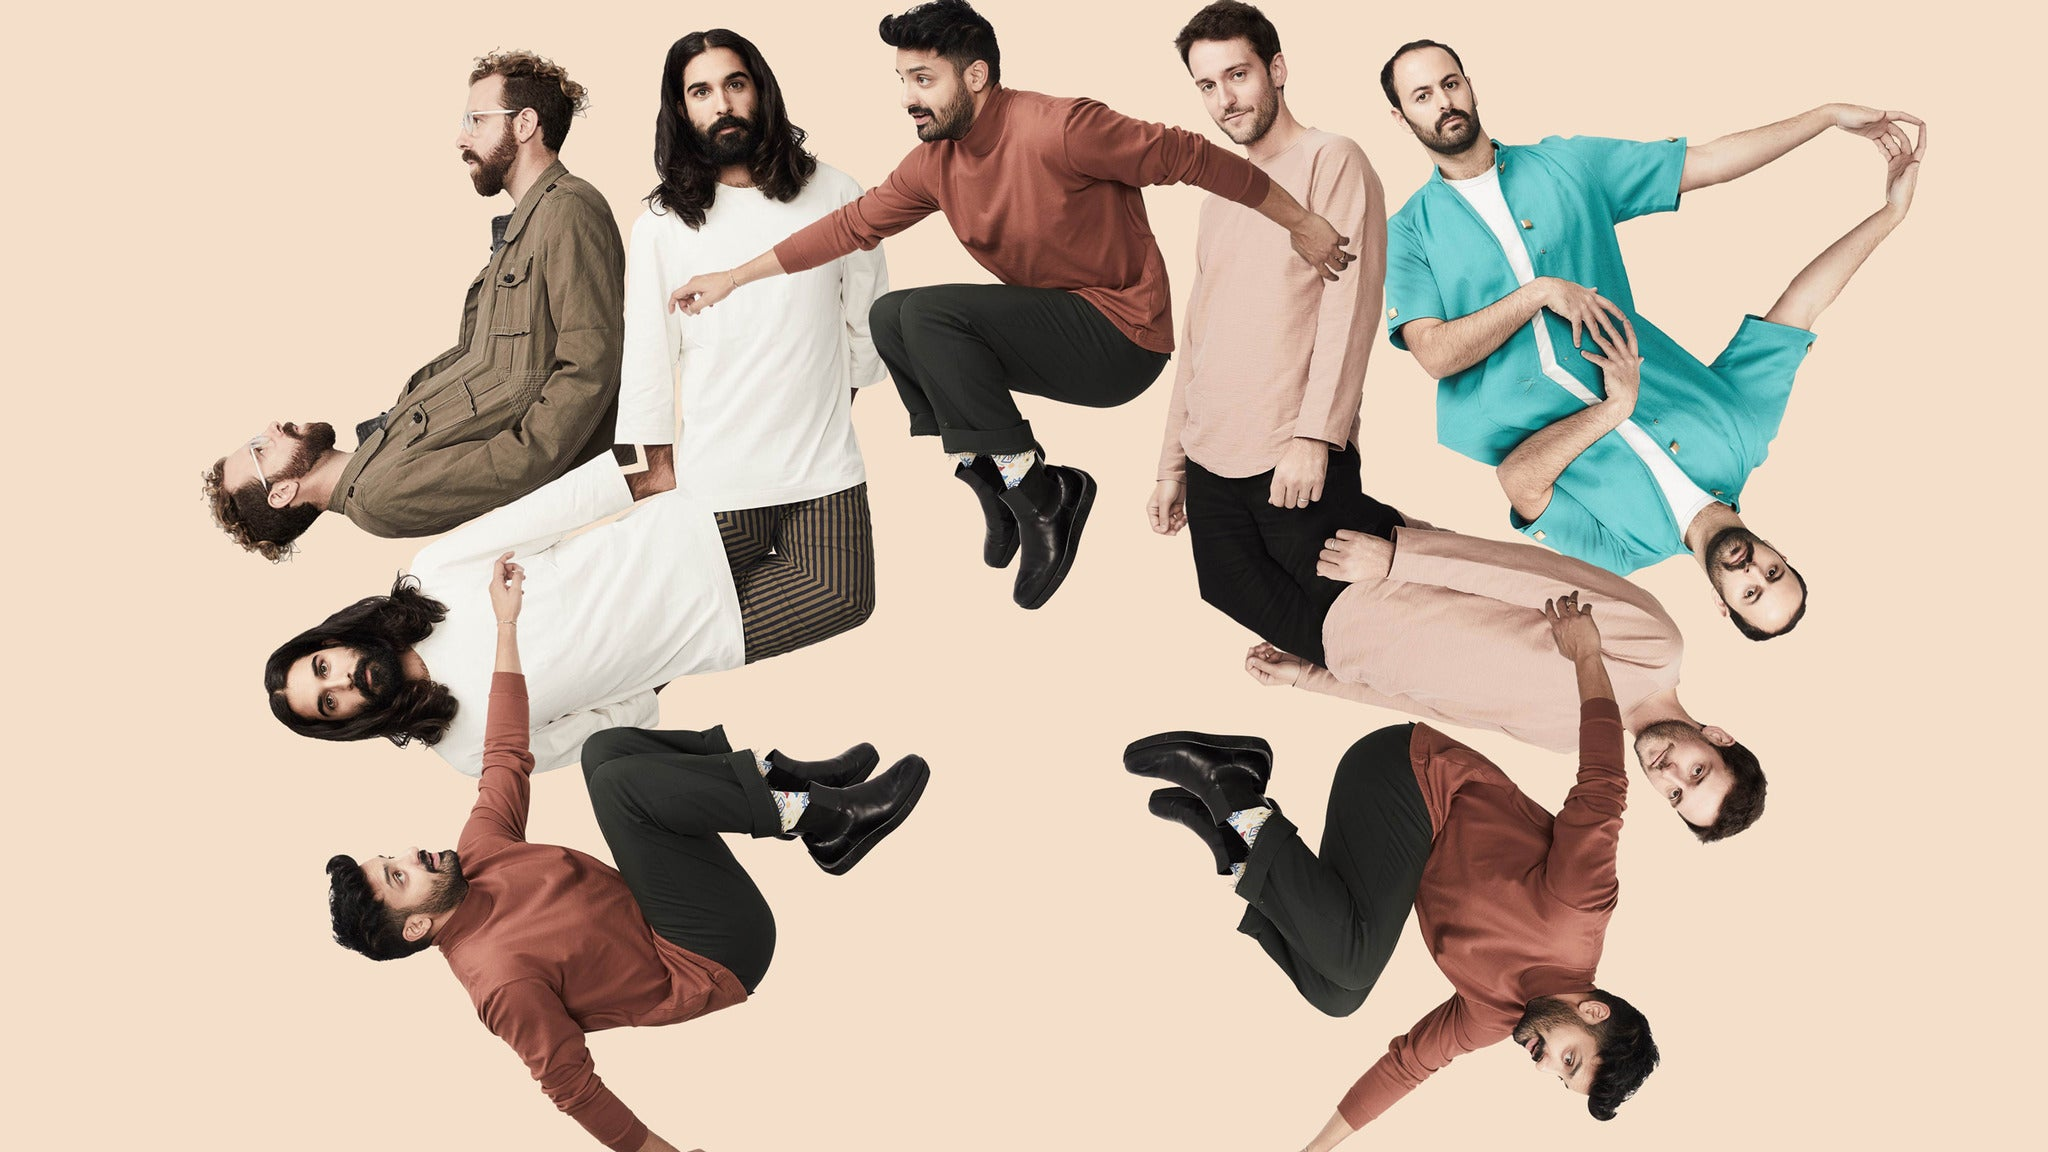 YOUNG THE GIANT + FITZ & THE TANTRUMS North American Tour